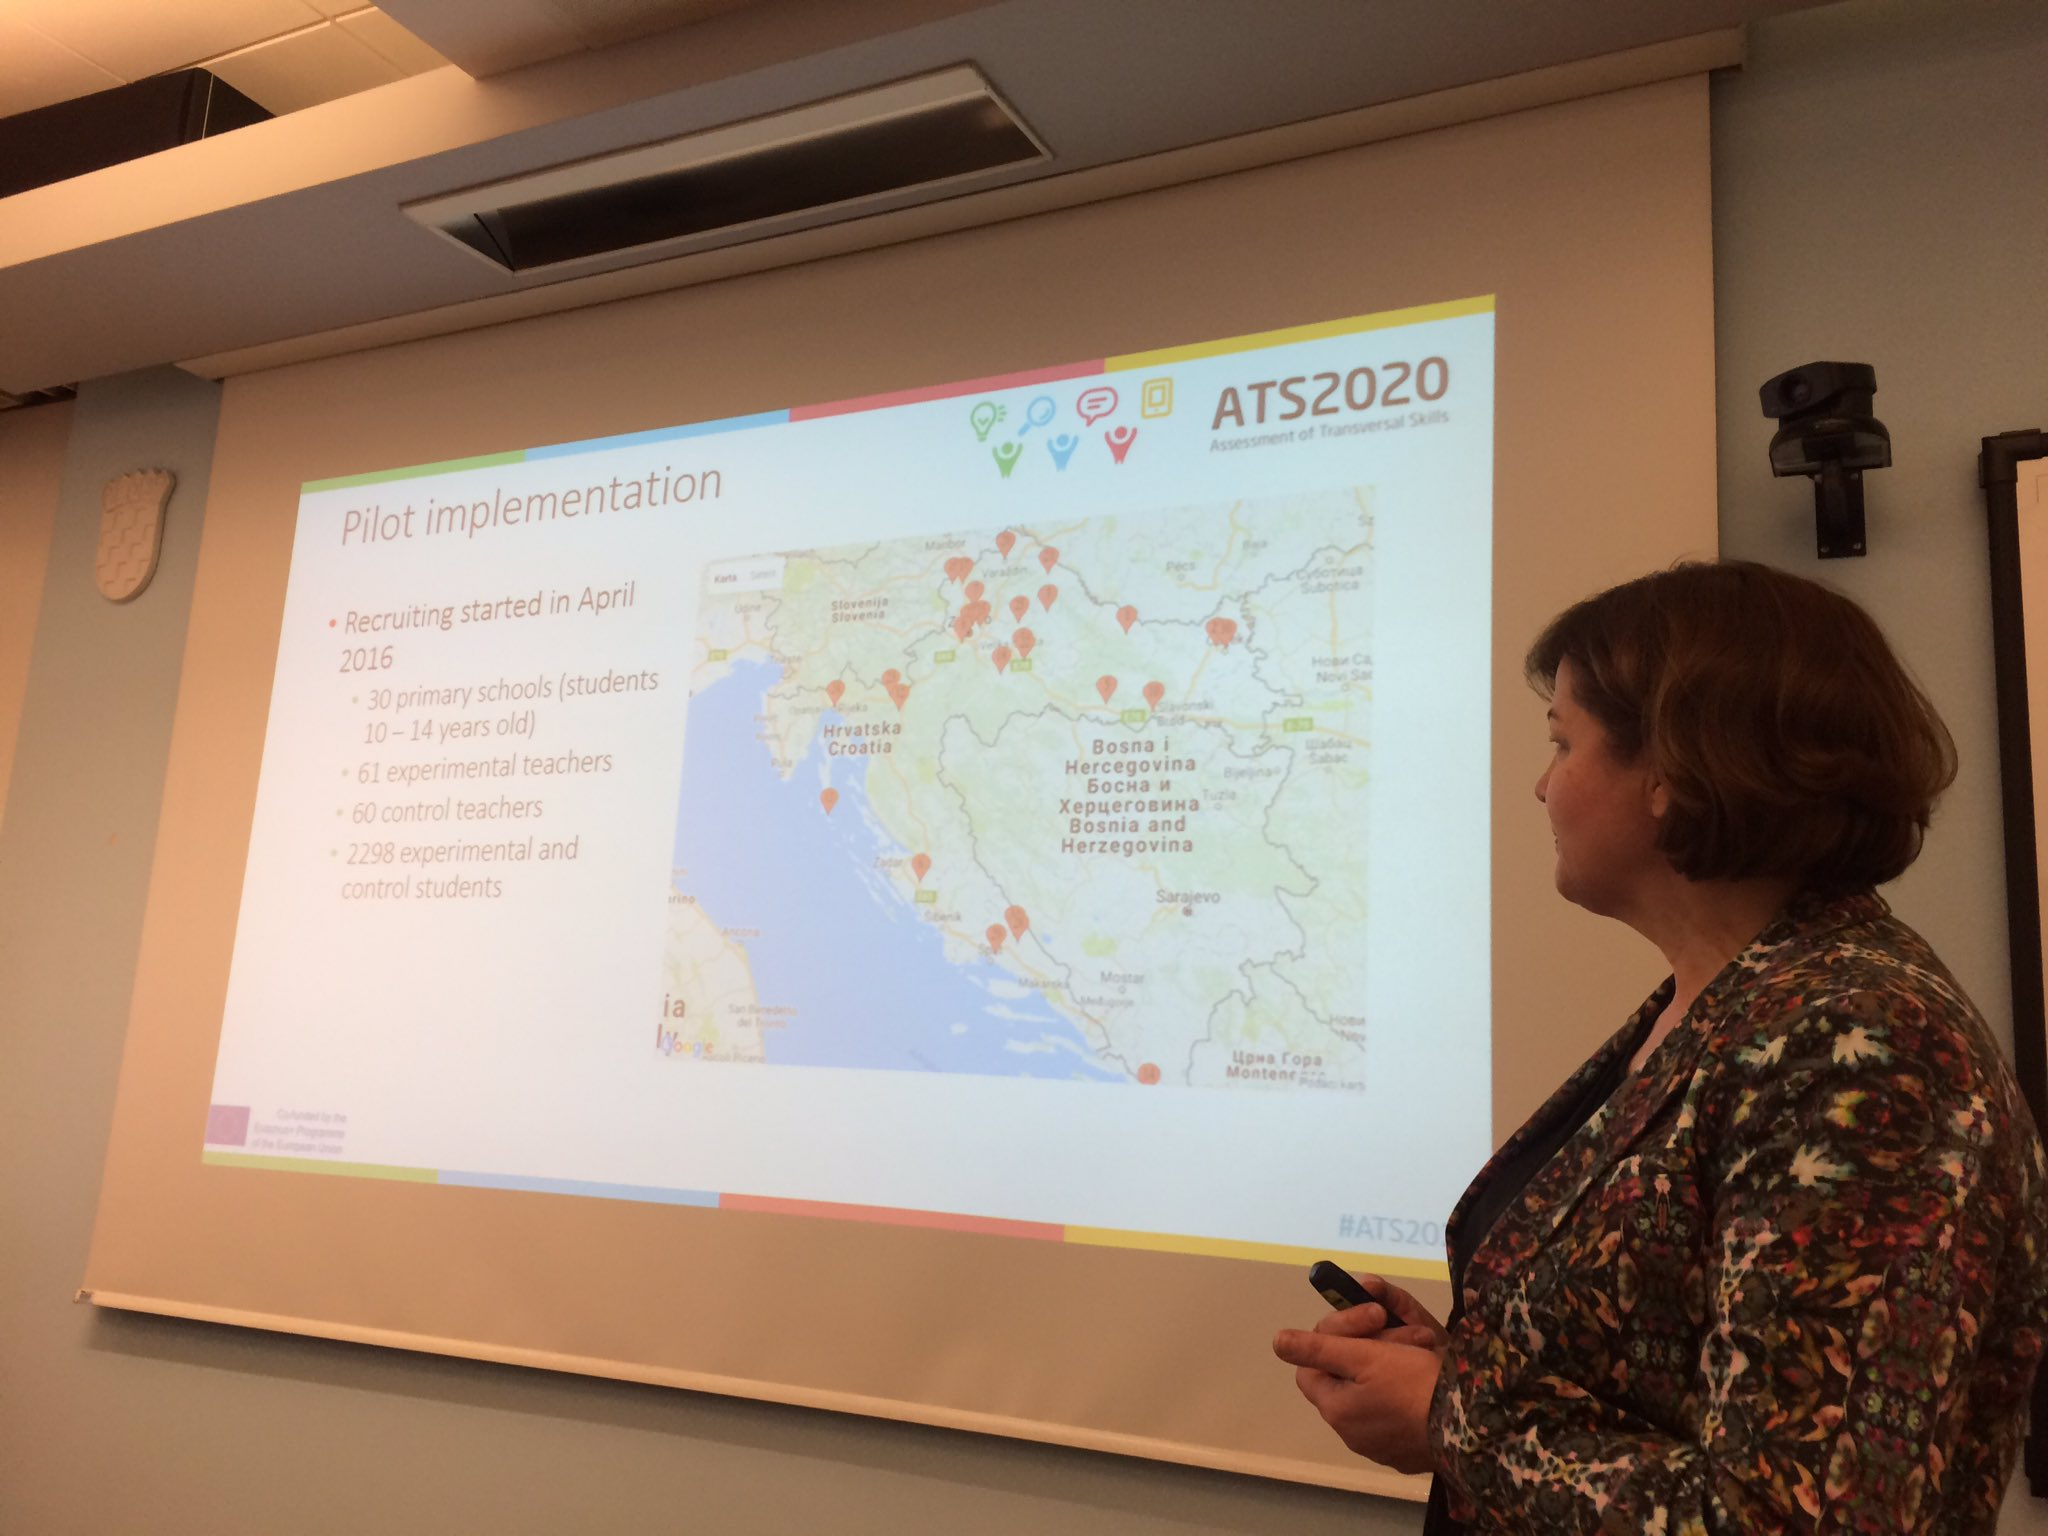 Jasna Tingle from @CARNetHR giving an insight into the #ats2020 pilot implementation in Croatia 🇭🇷 https://t.co/tAE9uqHslN